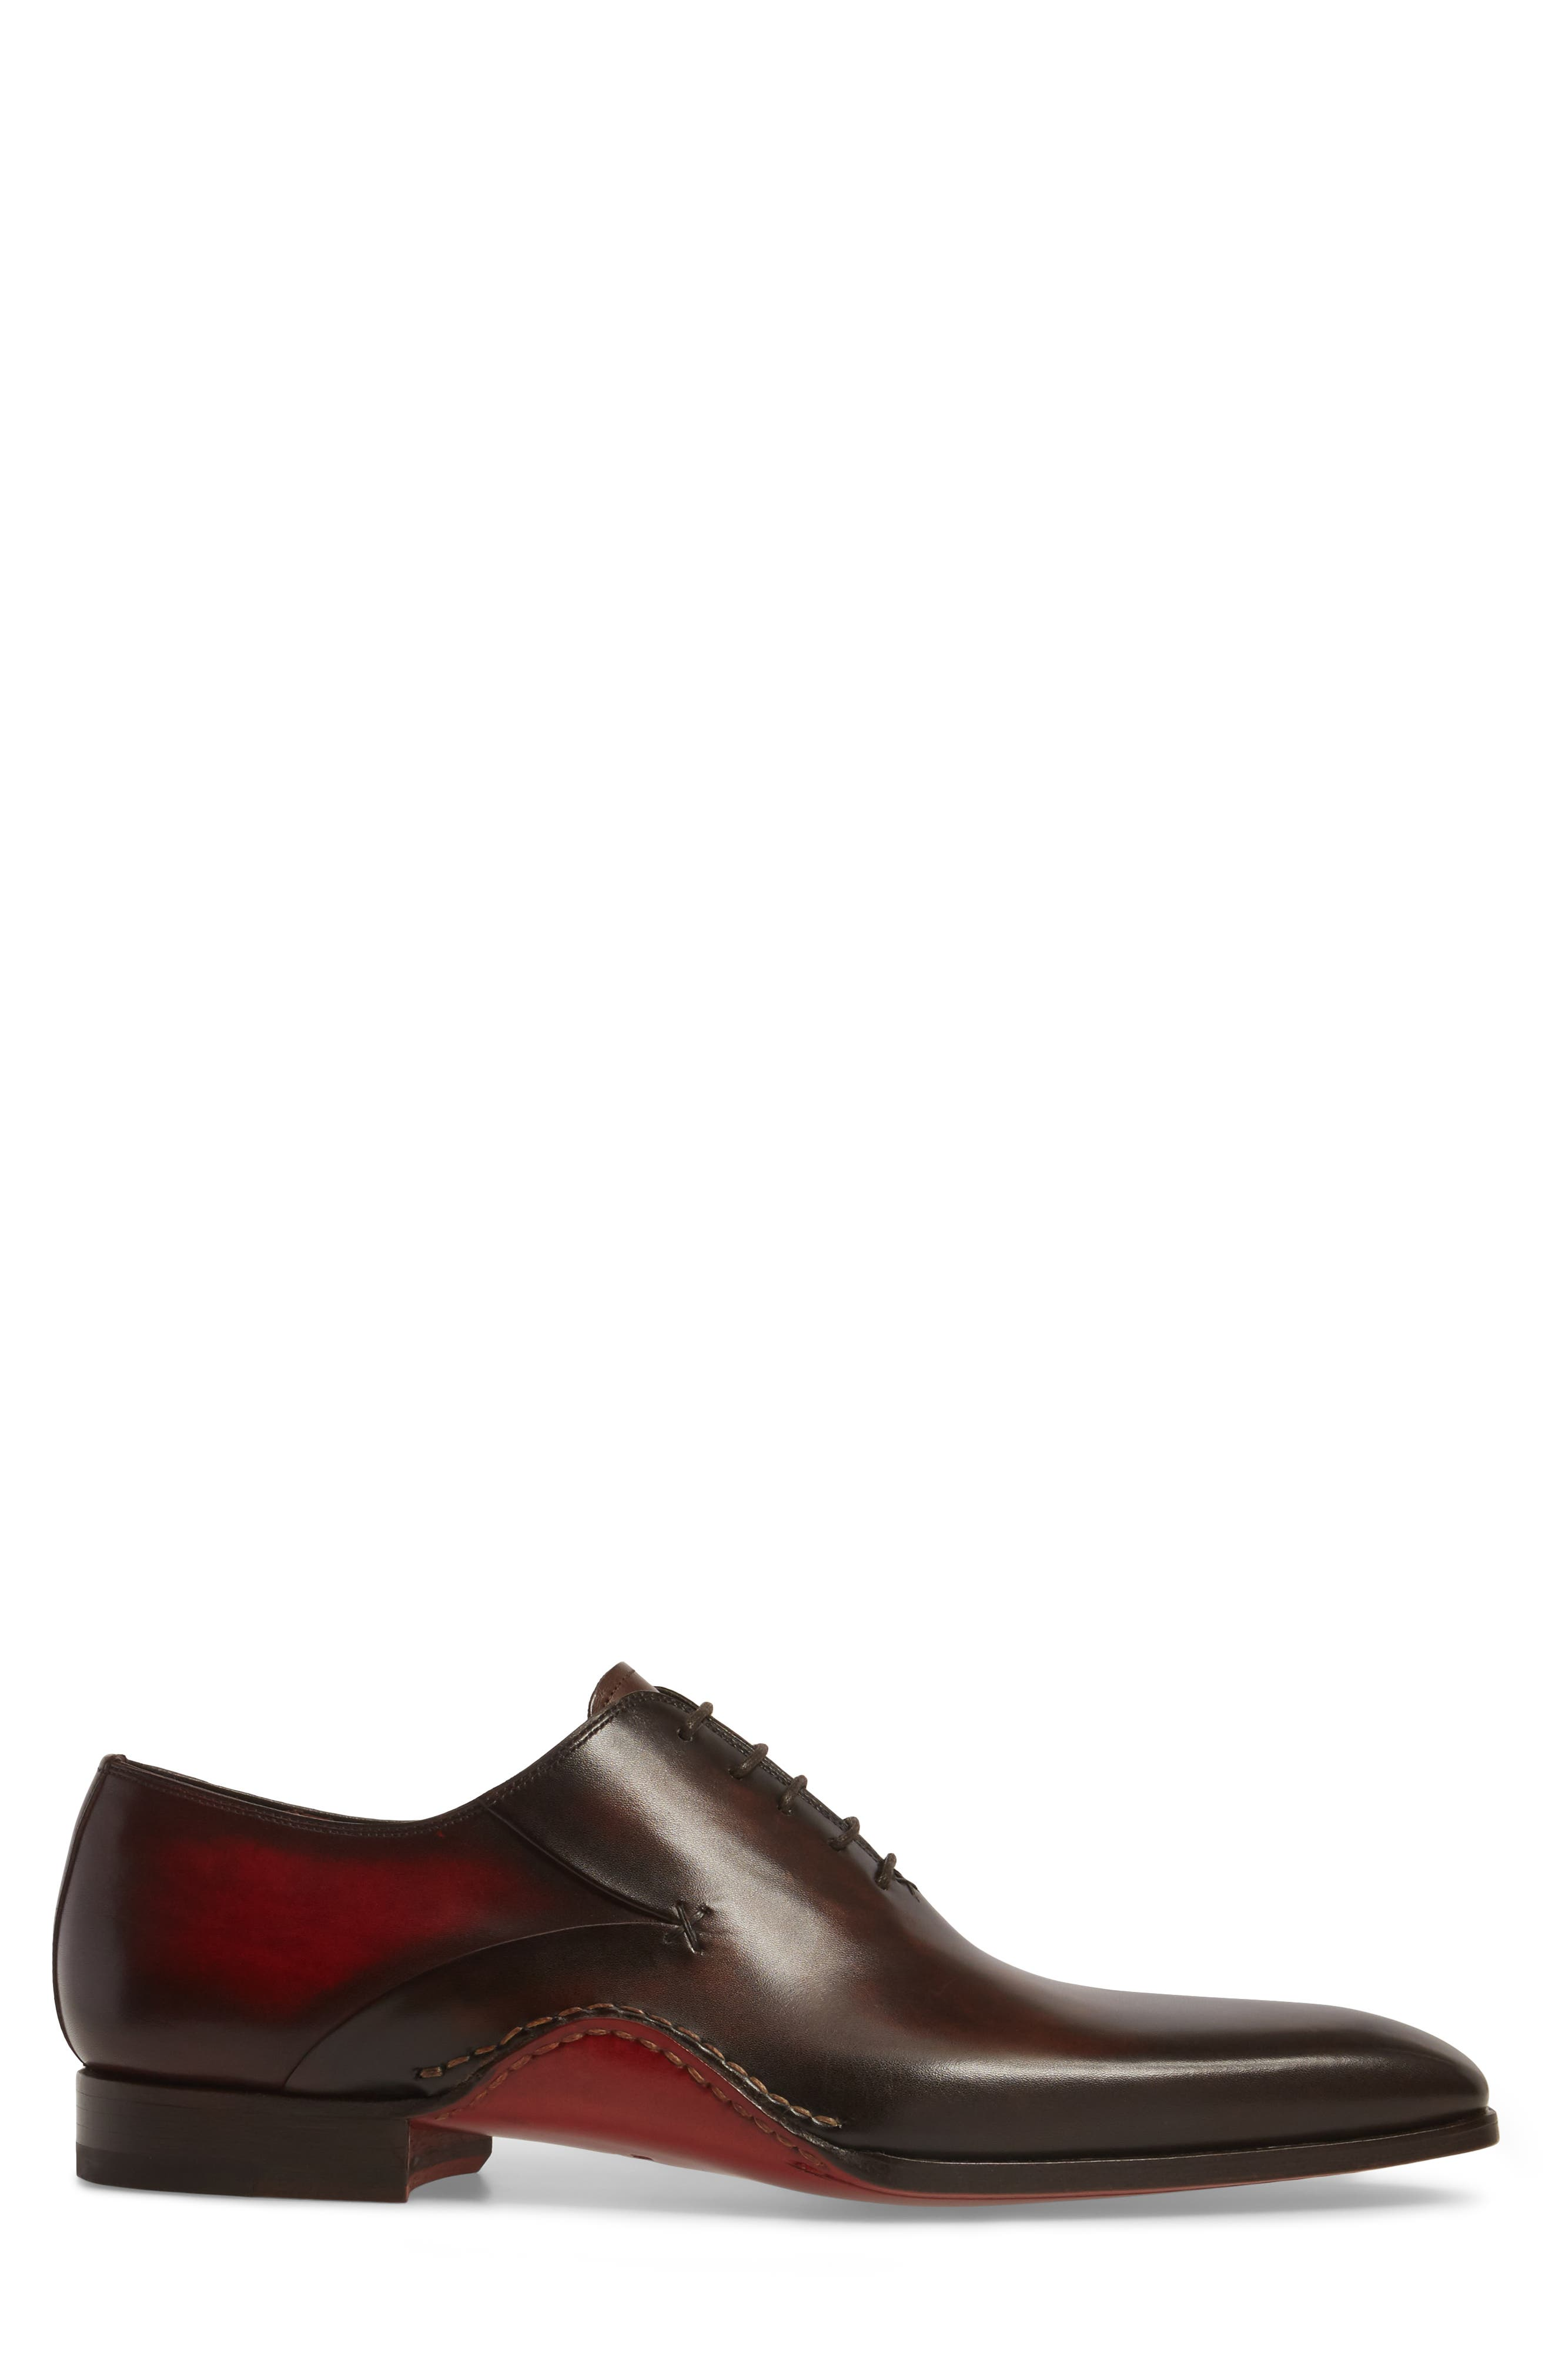 Cantabria Plain Toe Oxford,                             Alternate thumbnail 3, color,                             BROWN/ RED LEATHER